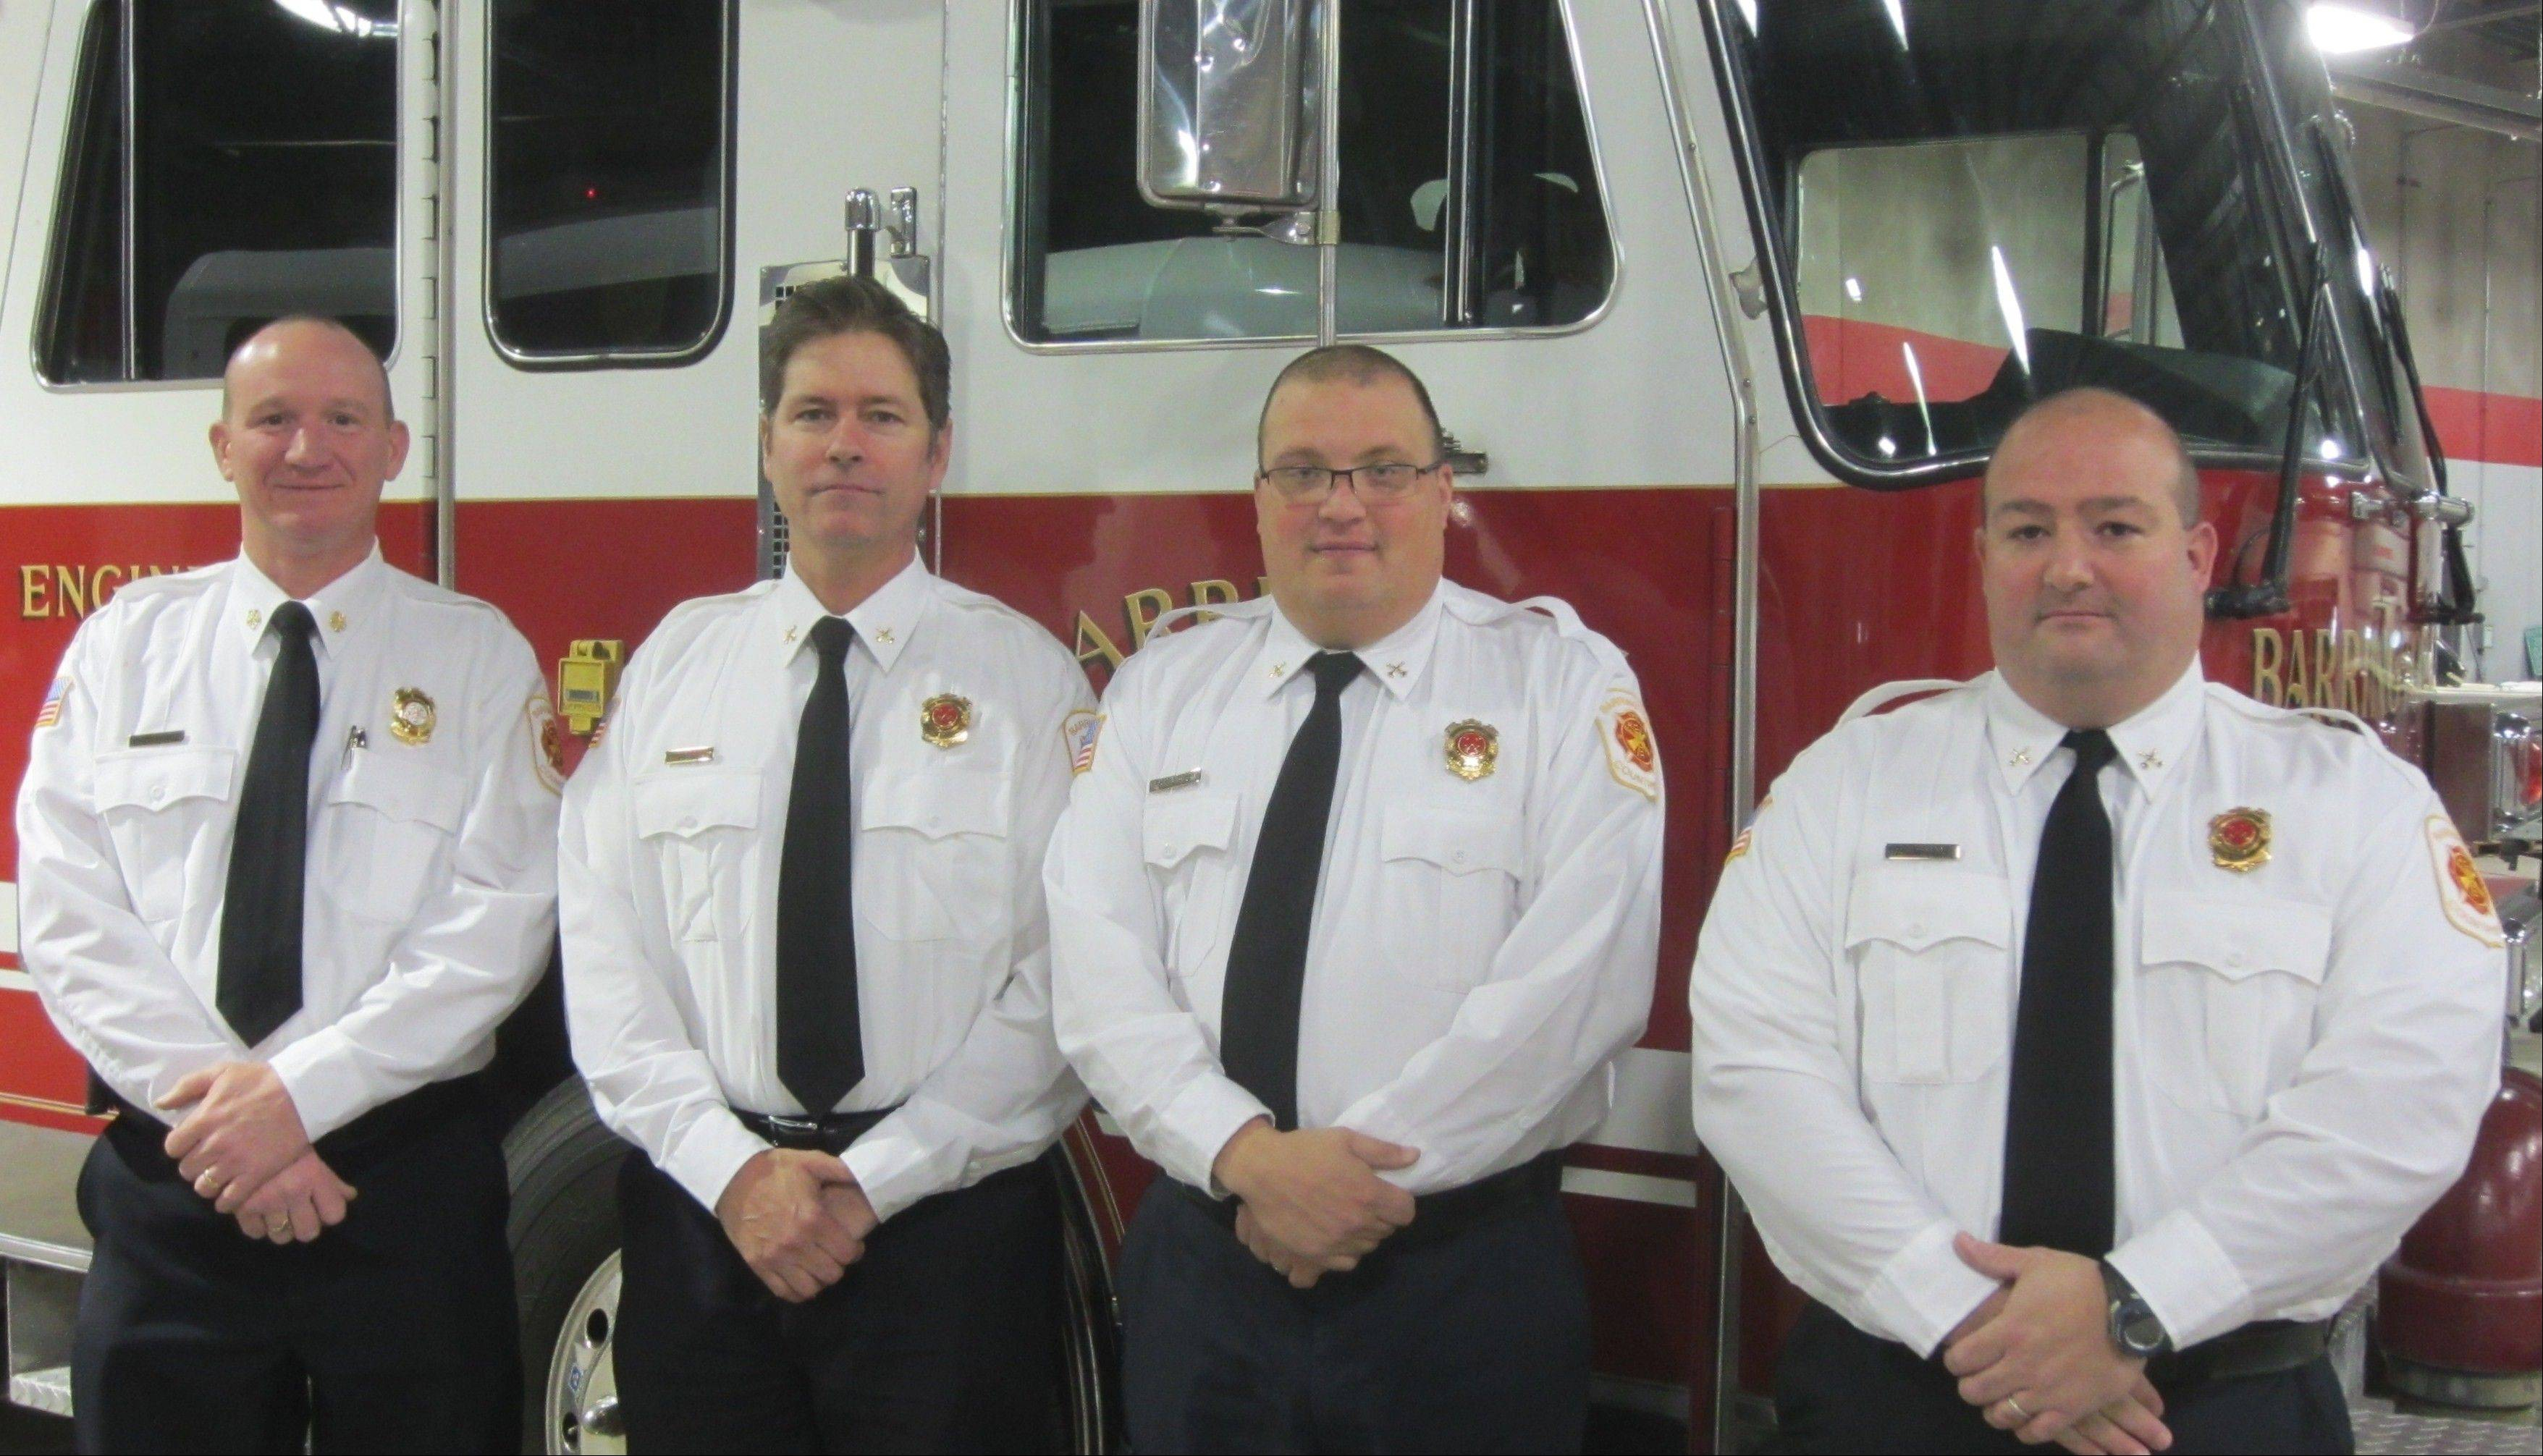 Jeff Swanson, far left, fire chief/administrator of the Barrington Countryside Fire Protection District, is being joined in leadership positions at the newly created department by, from second to left to right, Ron Eilken, Scott Motisi, and Jeff Tress. The district announced Monday that Eilken, Motisi and Tress have been hired as battalion chiefs.